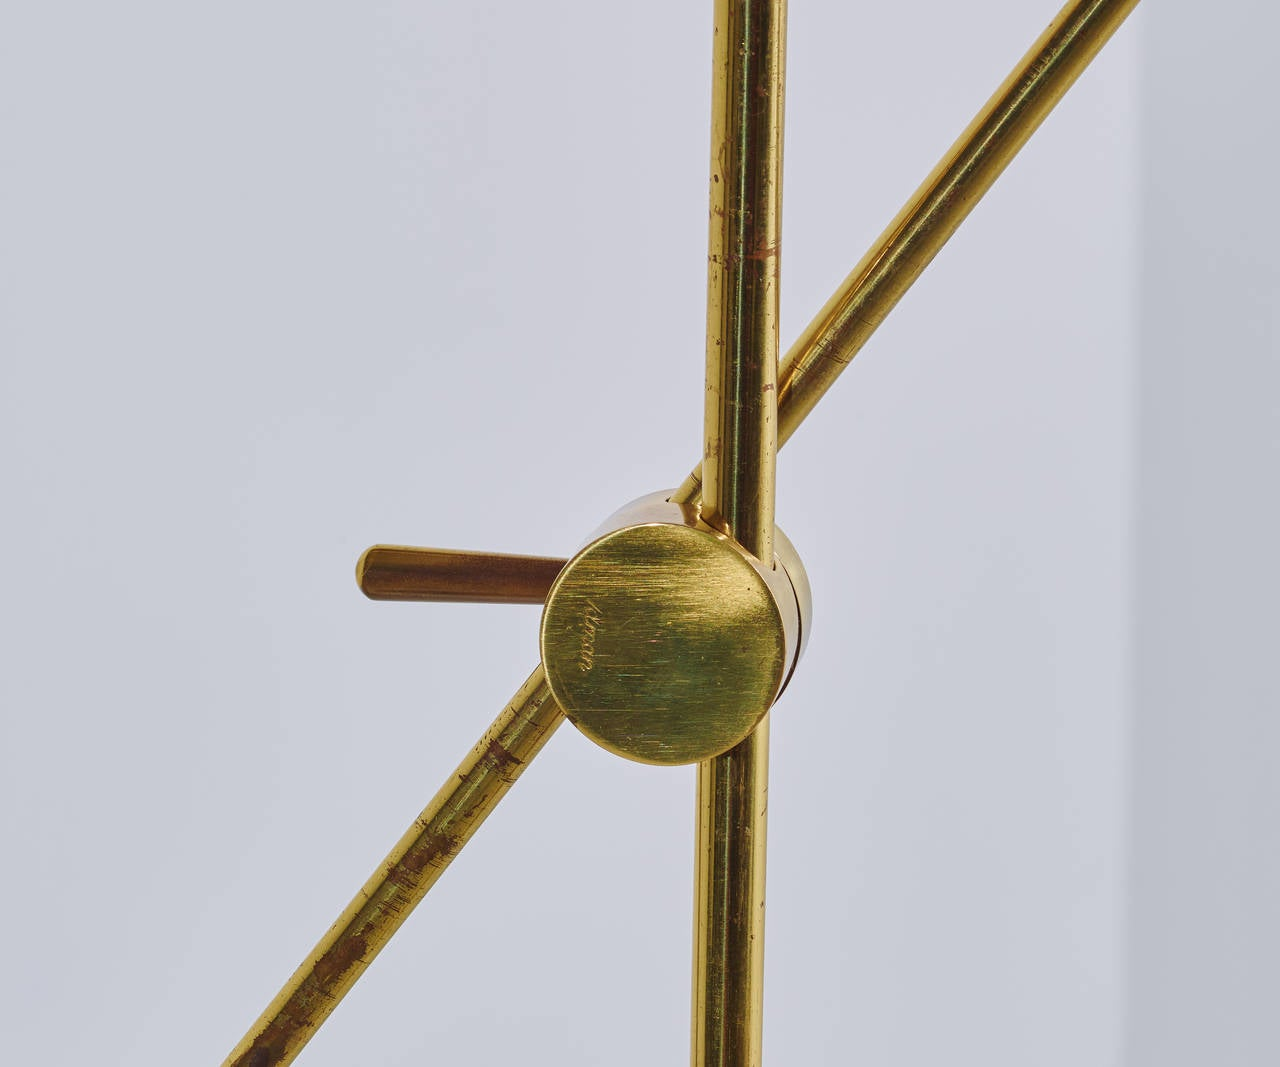 Mid-20th Century Tapio Wirkkala Floor Lamp, Model K10-11, 1958